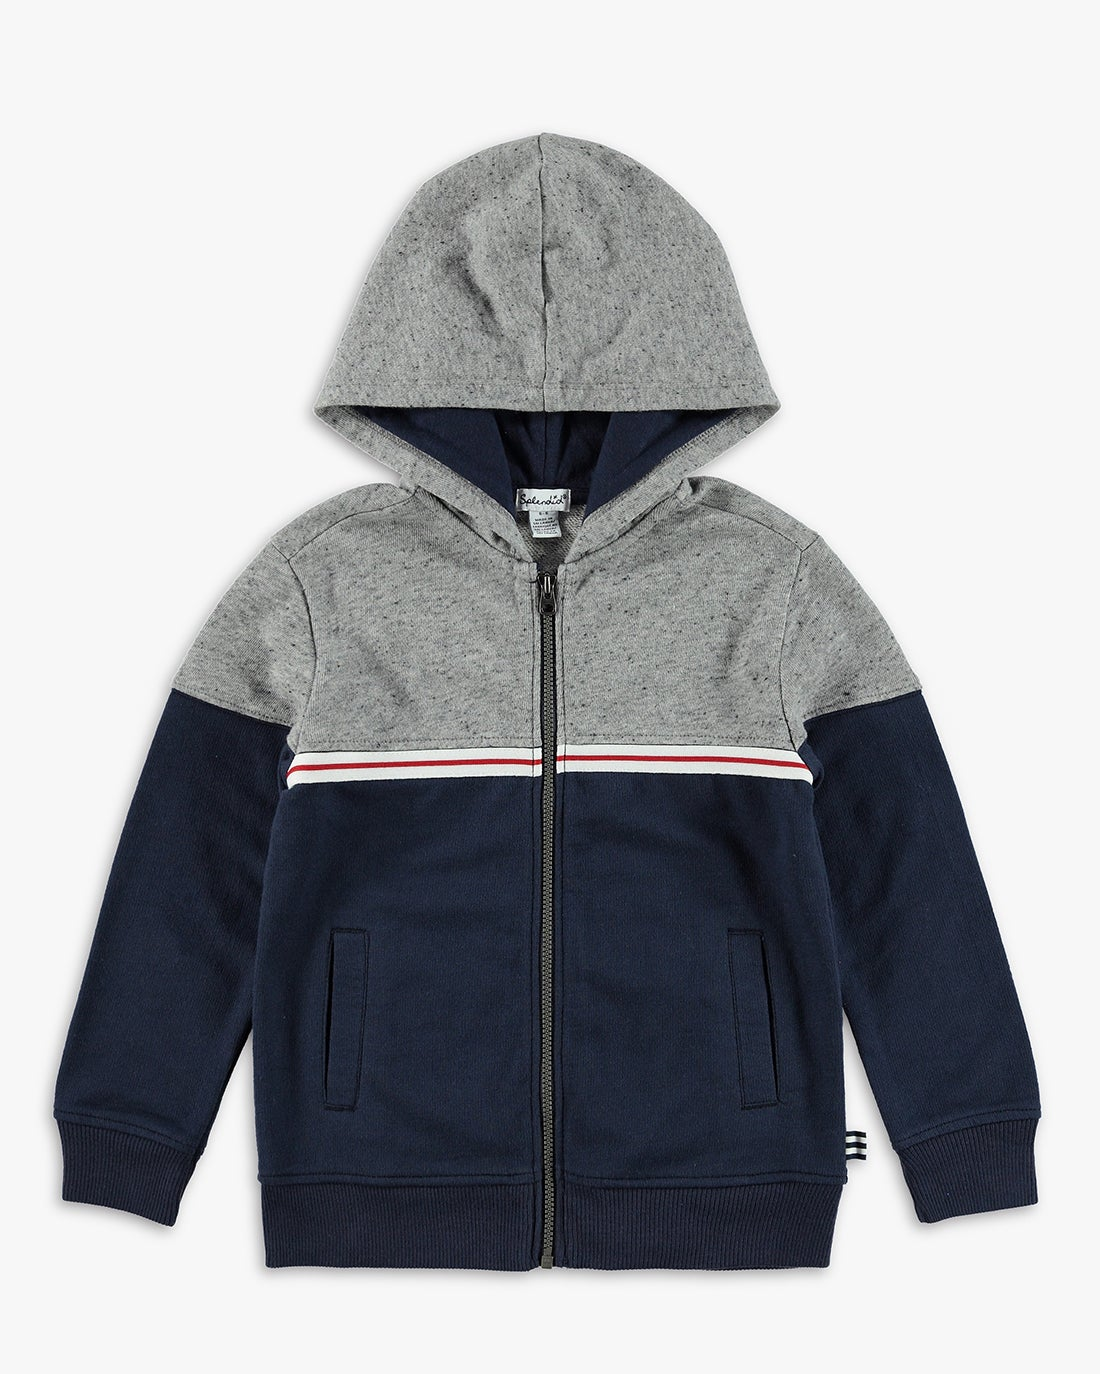 6317505e Home; Little Boy Color Block Hoodie. Skip to the end of the images gallery